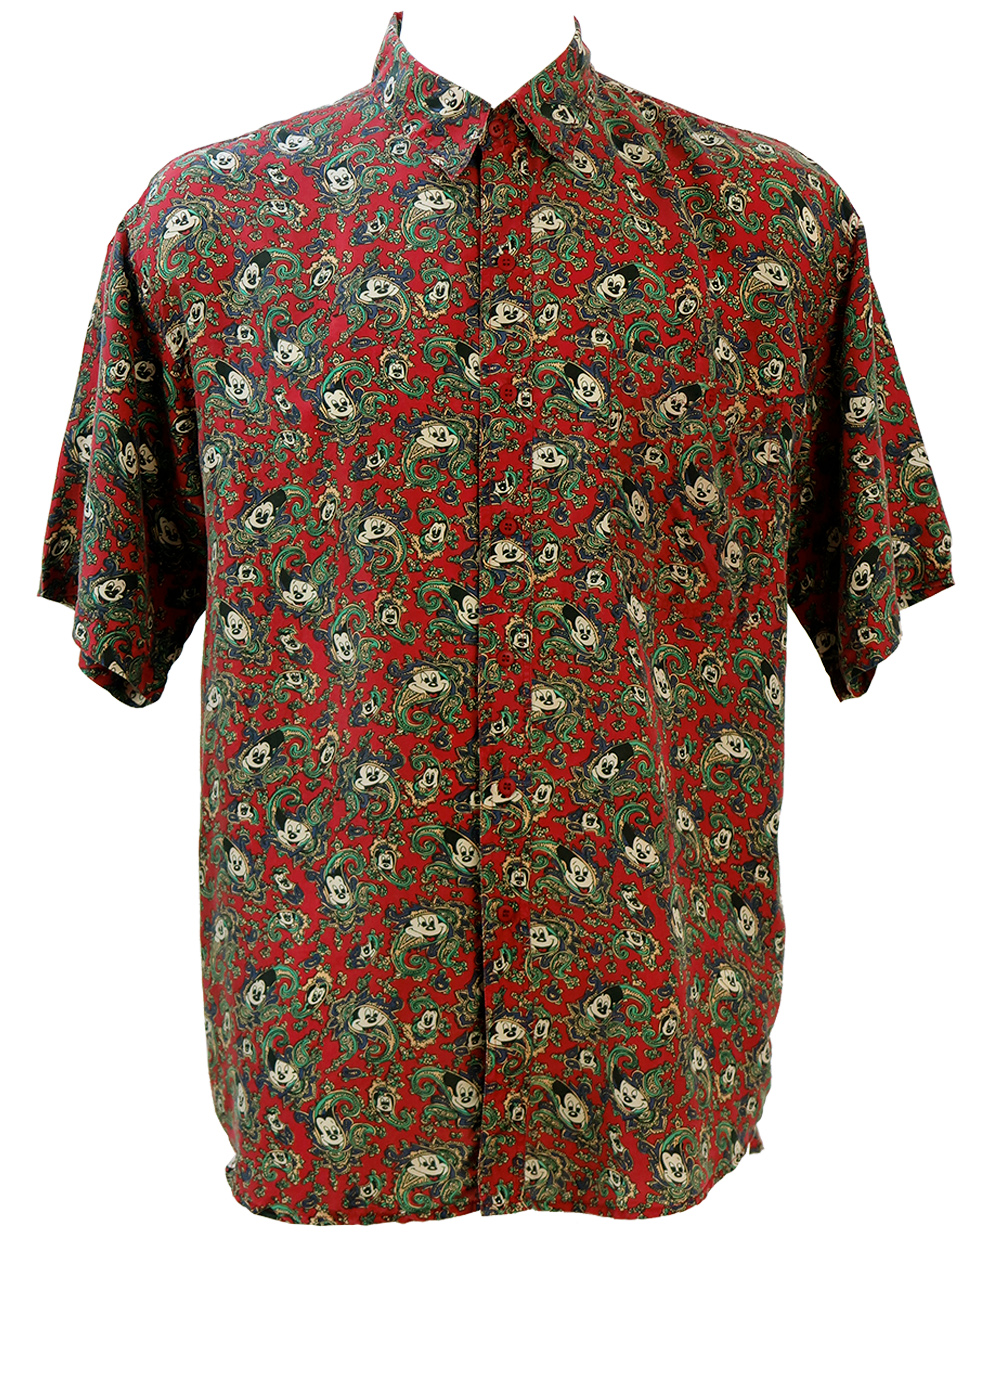 3ba80f790b1a29 Vintage 90's Silk Short Sleeved Shirt with Mickey Mouse Paisley Pattern -  L/XL